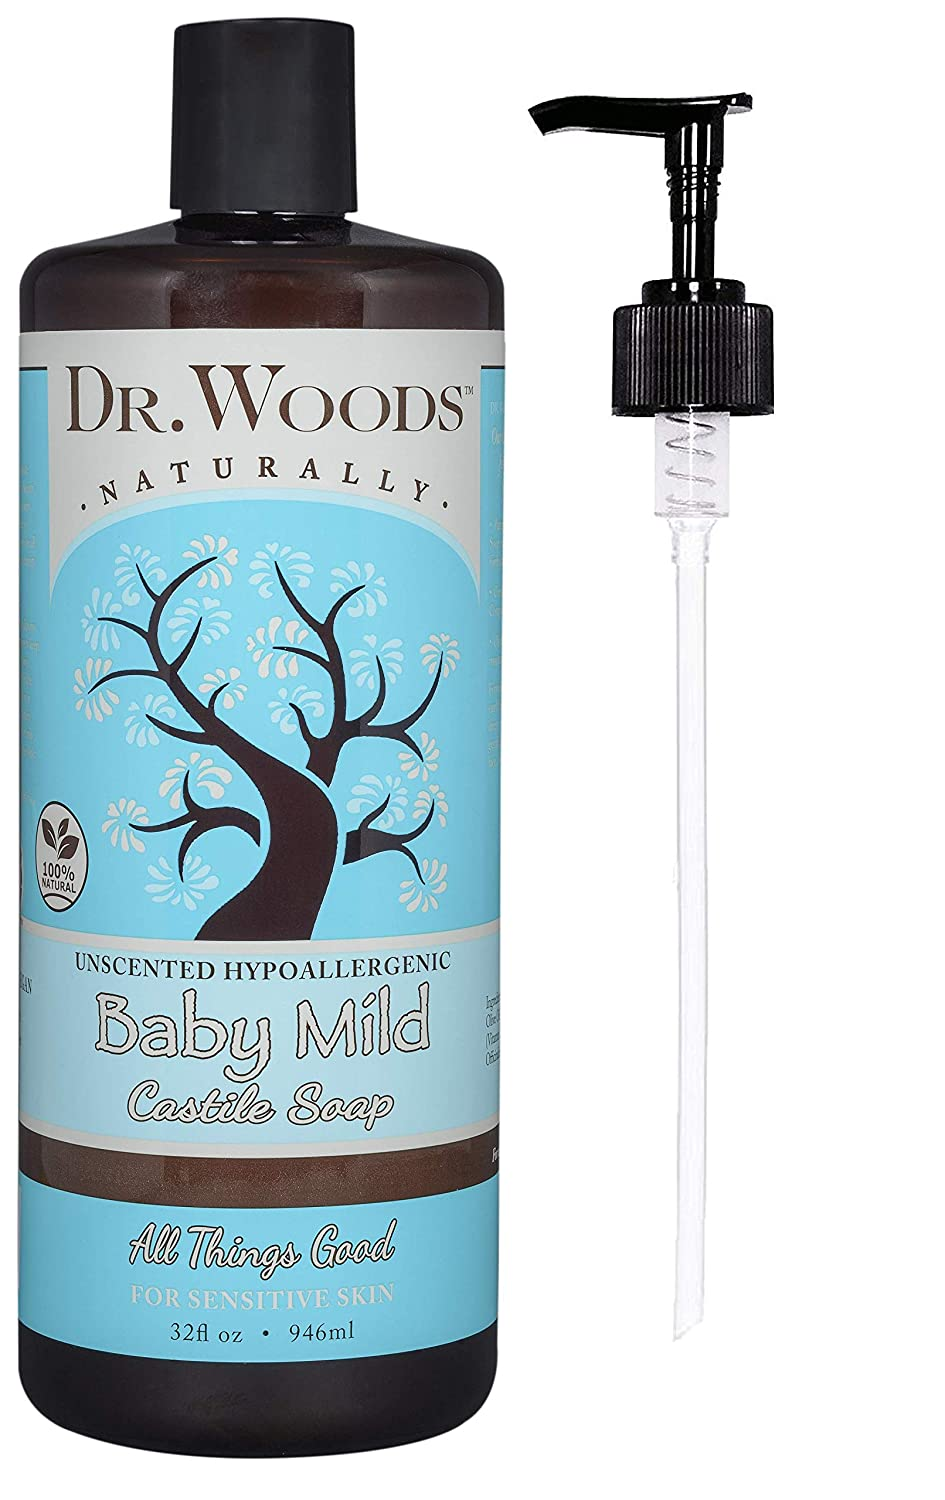 Dr. Woods Unscented Baby Mild Castile Soap & Body Wash with Pump, 32 Ounce